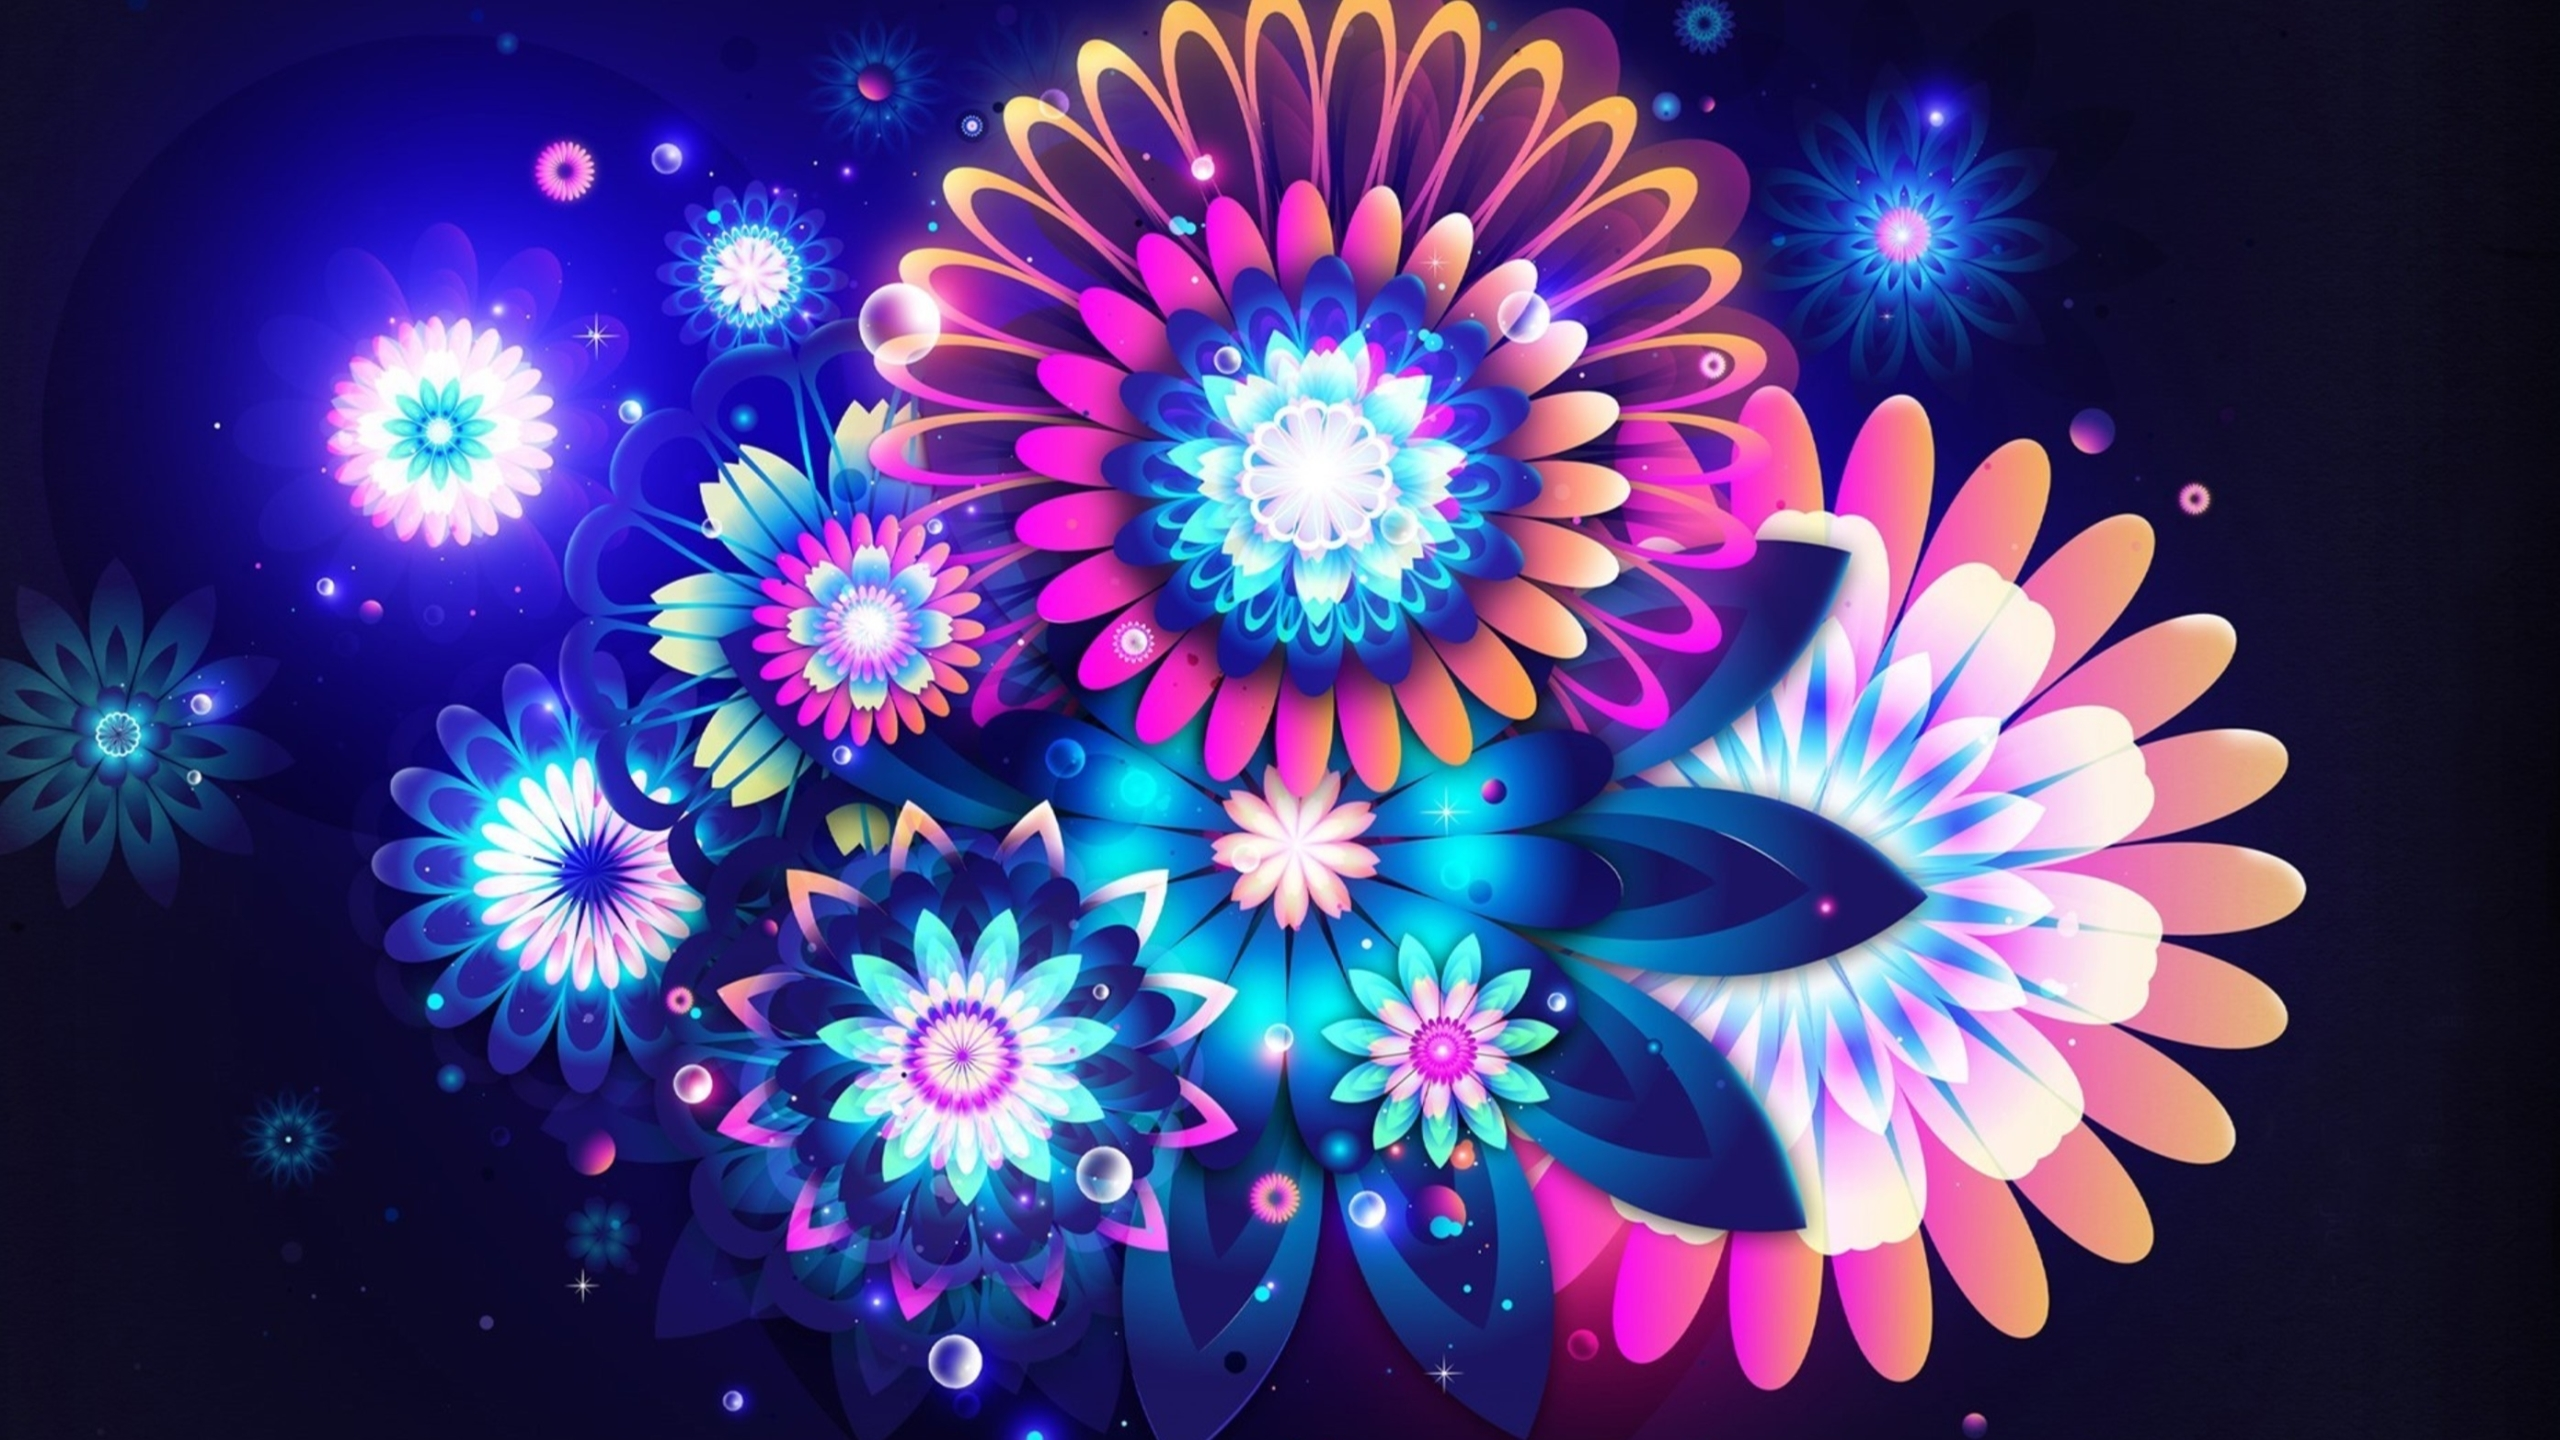 Awesome flower background HD wallpaper